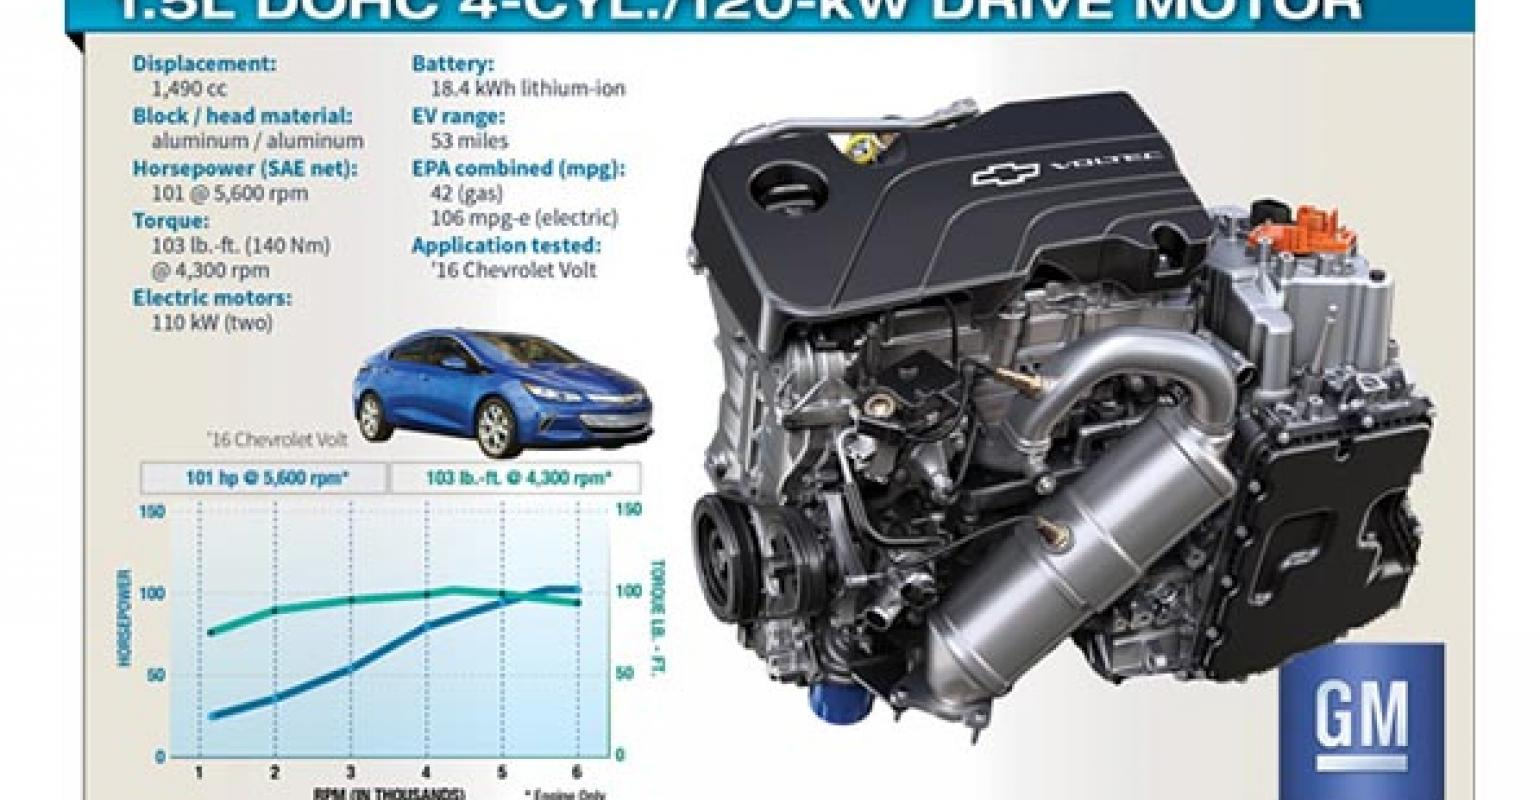 Gm Made Major Improvements In Ice Engine As Well Electric Motors Battery Pack And